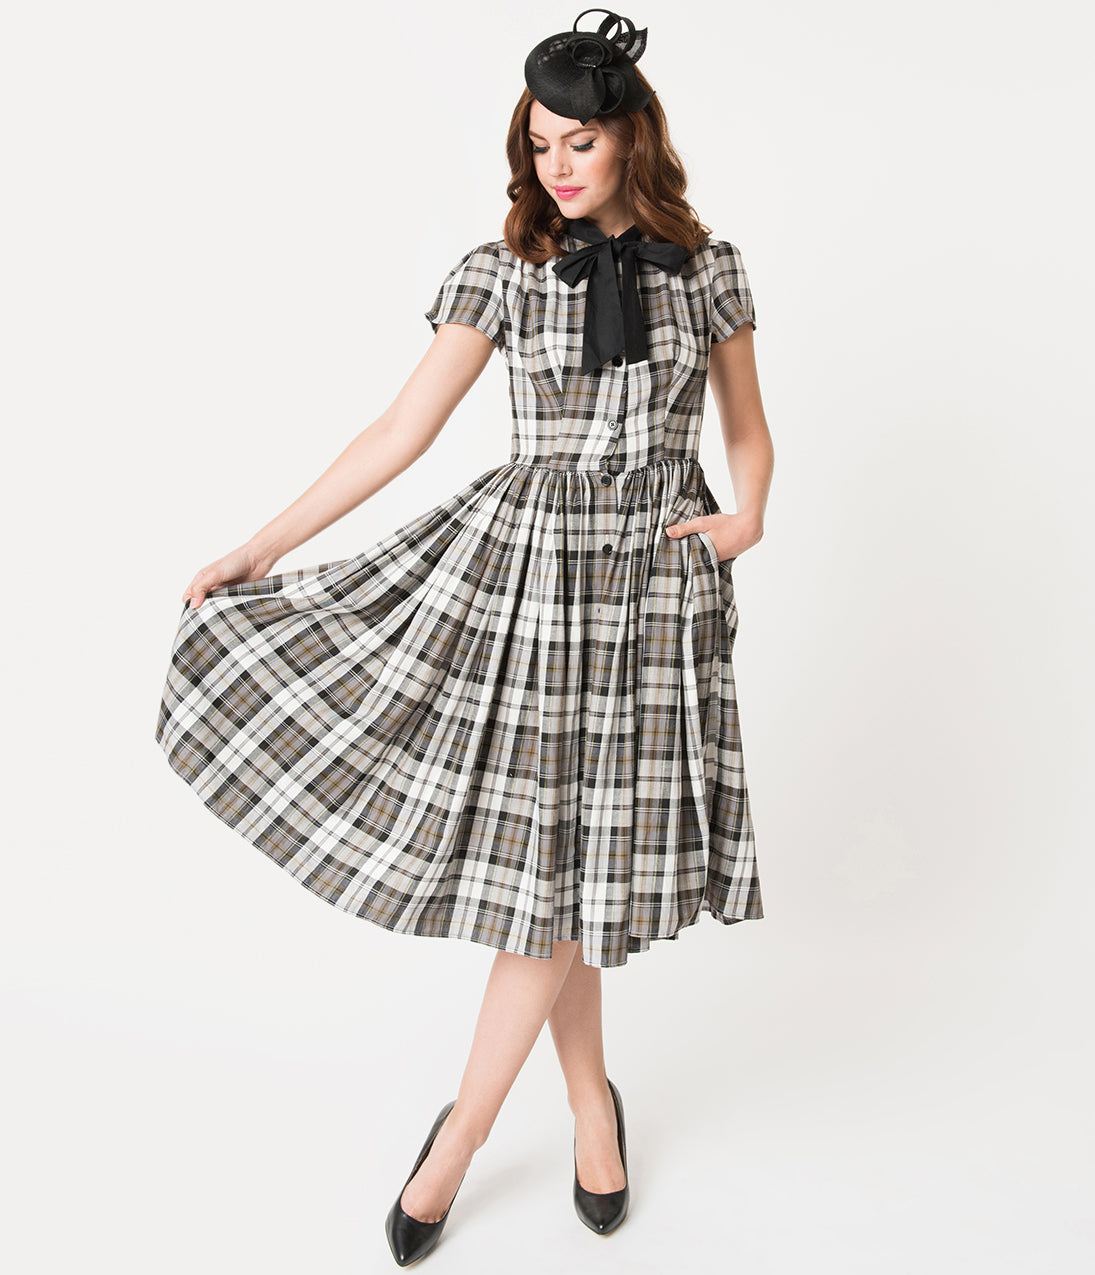 1950s Swing Dresses | 50s Swing Dress Unique Vintage 1950S Style Grey Plaid Button Up Swing Dress $98.00 AT vintagedancer.com